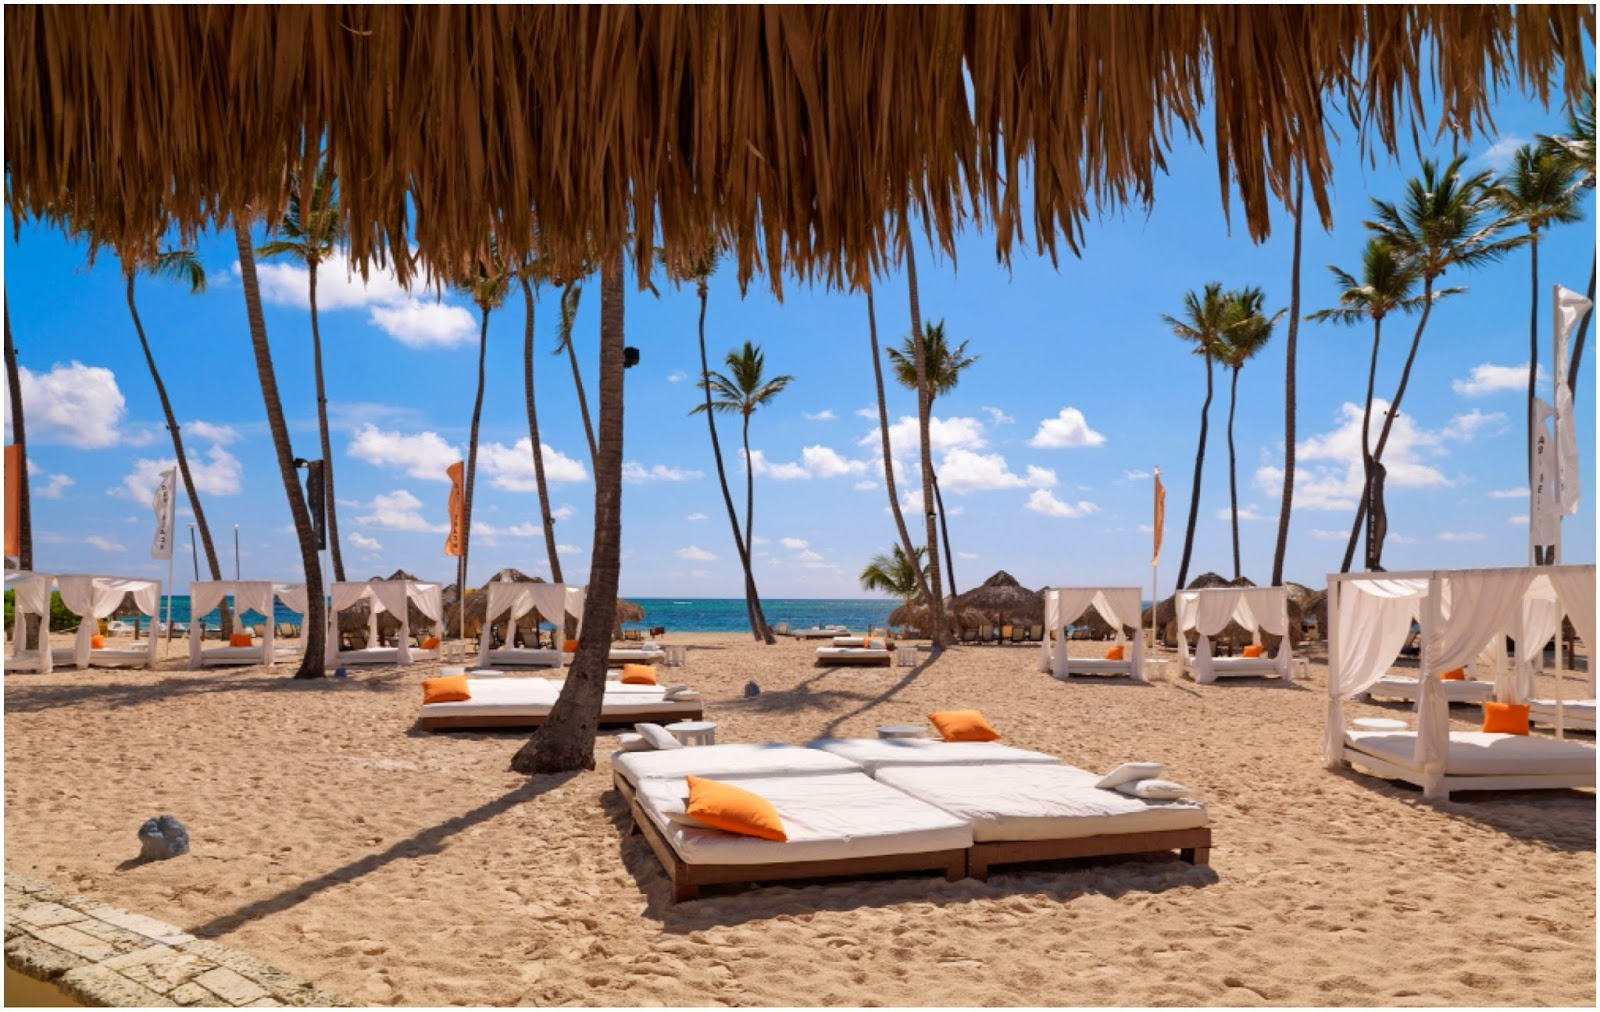 To Book A Reservation At Paradisus Palma Real Or Other Resorts Visit